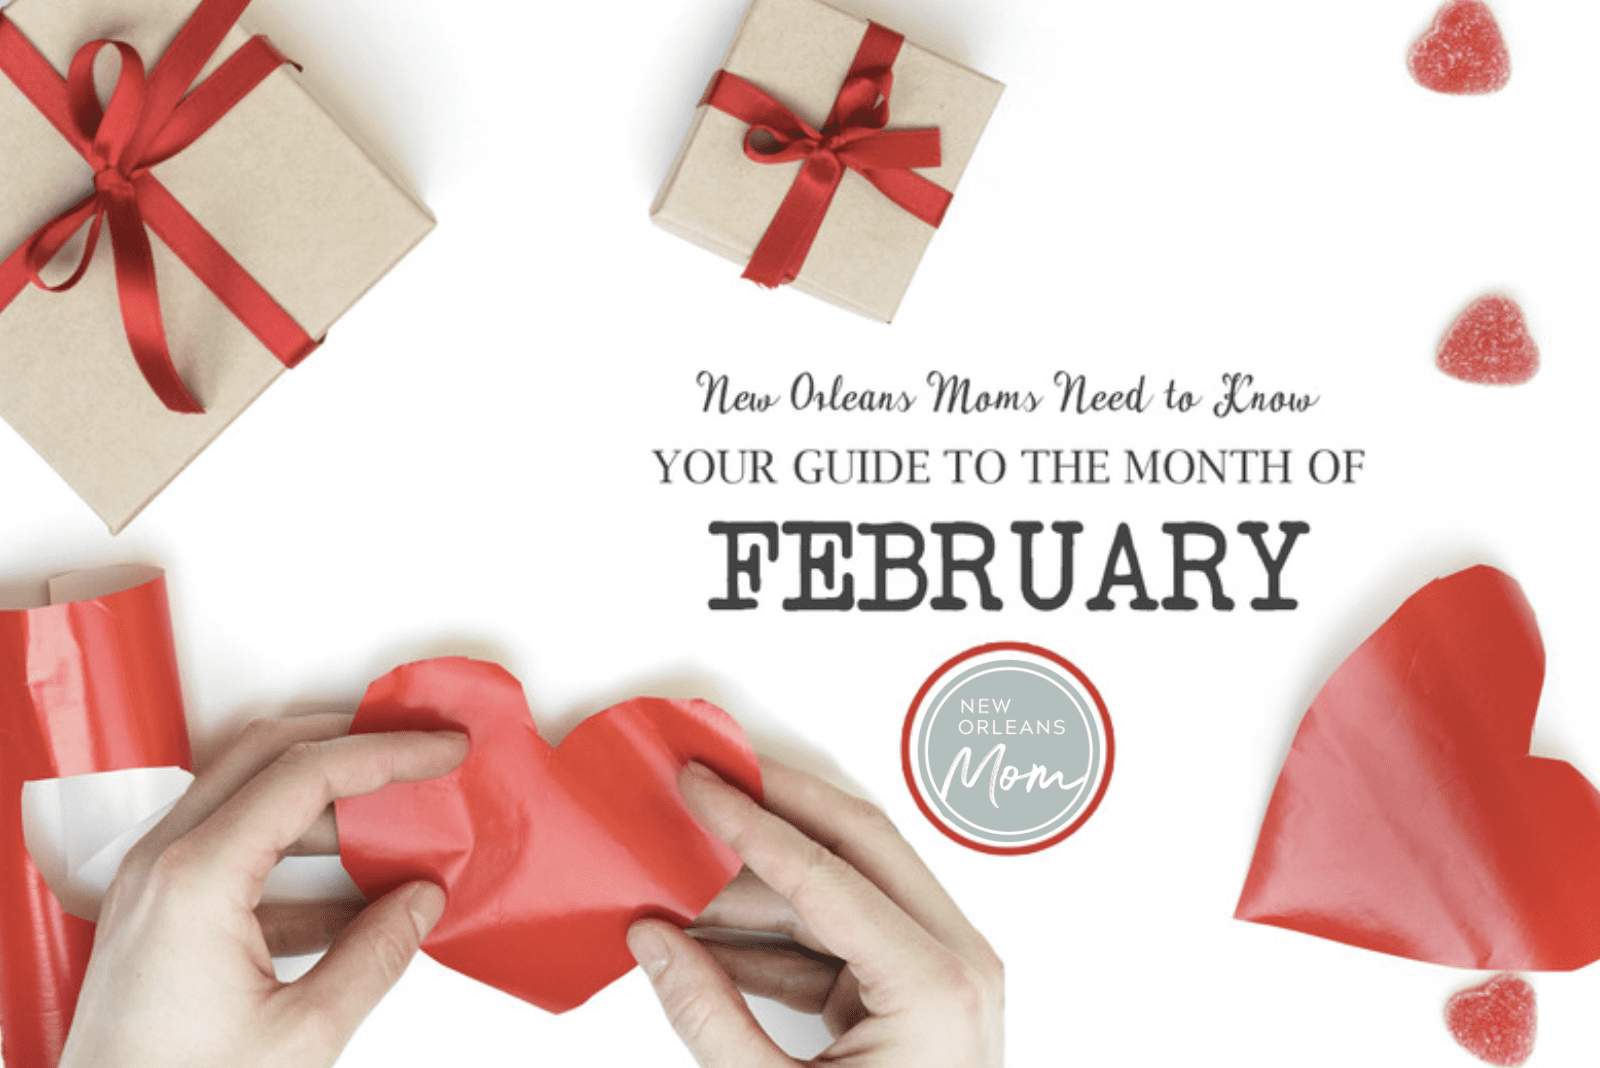 February 2021 Events in New Orleans